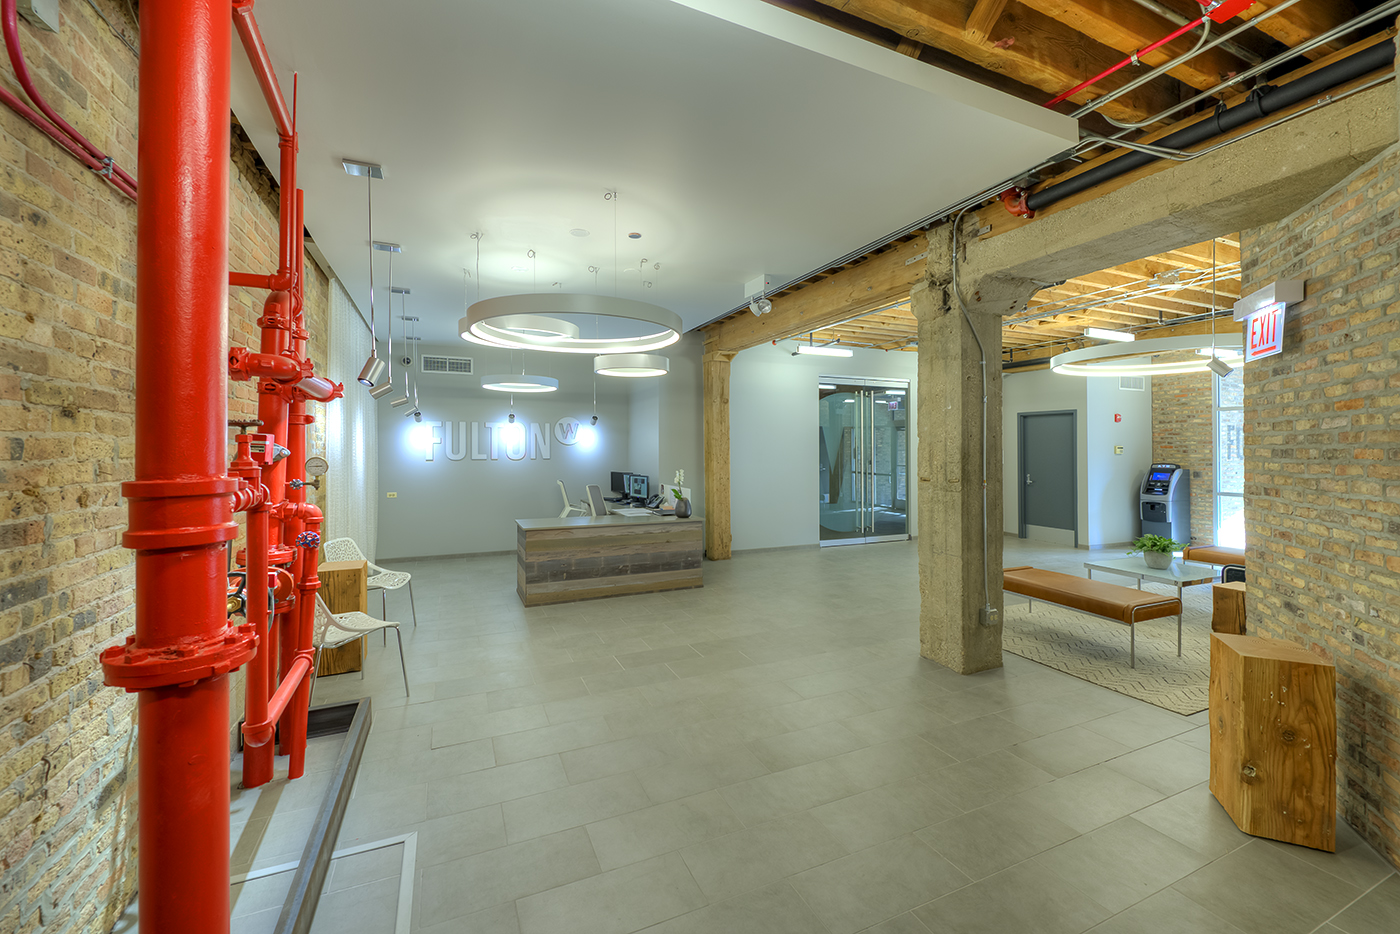 300 N. Elizabeth-Lobby Renovation